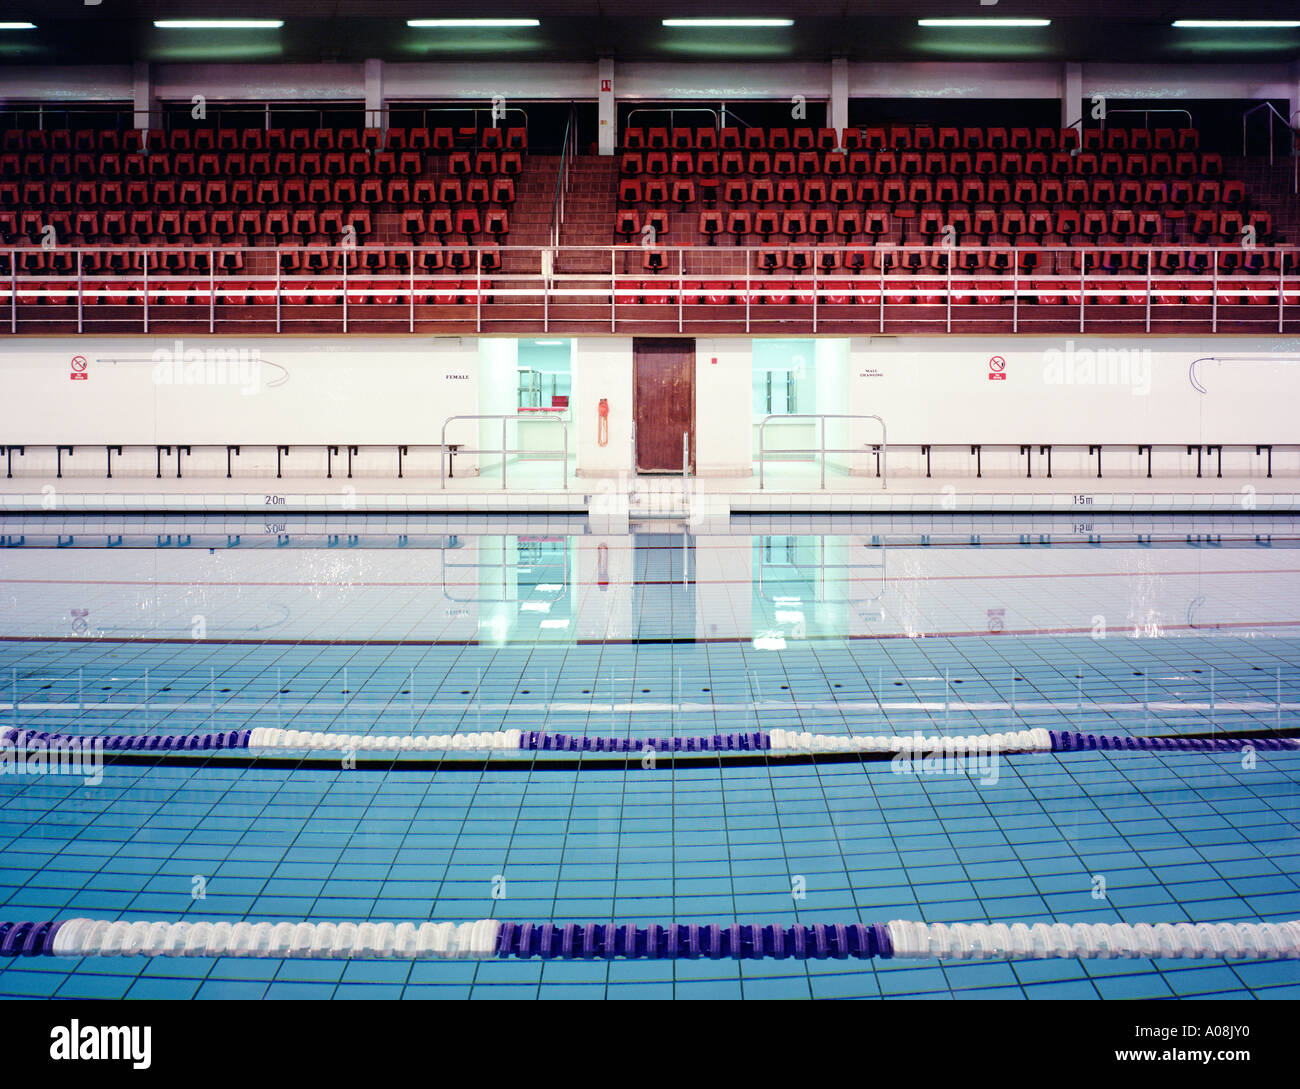 Leisure centre pool interior stock photos leisure centre pool interior stock images alamy for Wyndley leisure centre swimming pool